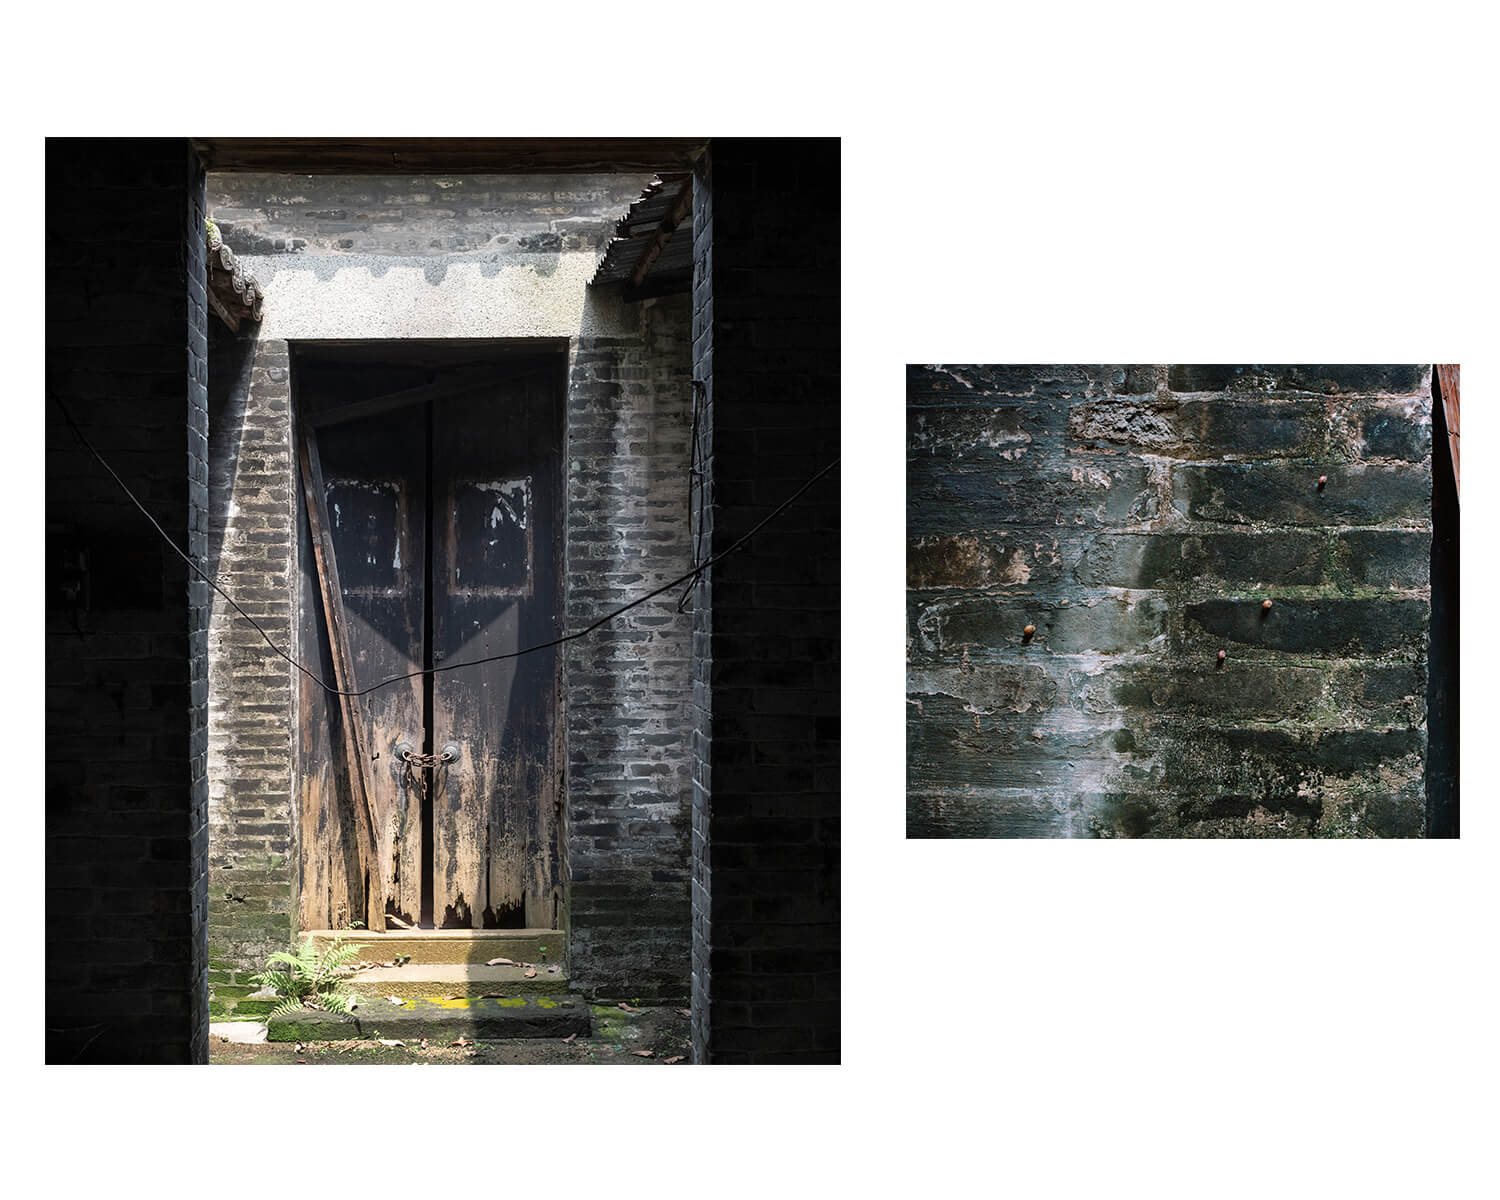 Tony Mak - To The West Of The Solitary Sea. Old chained door and brick detail